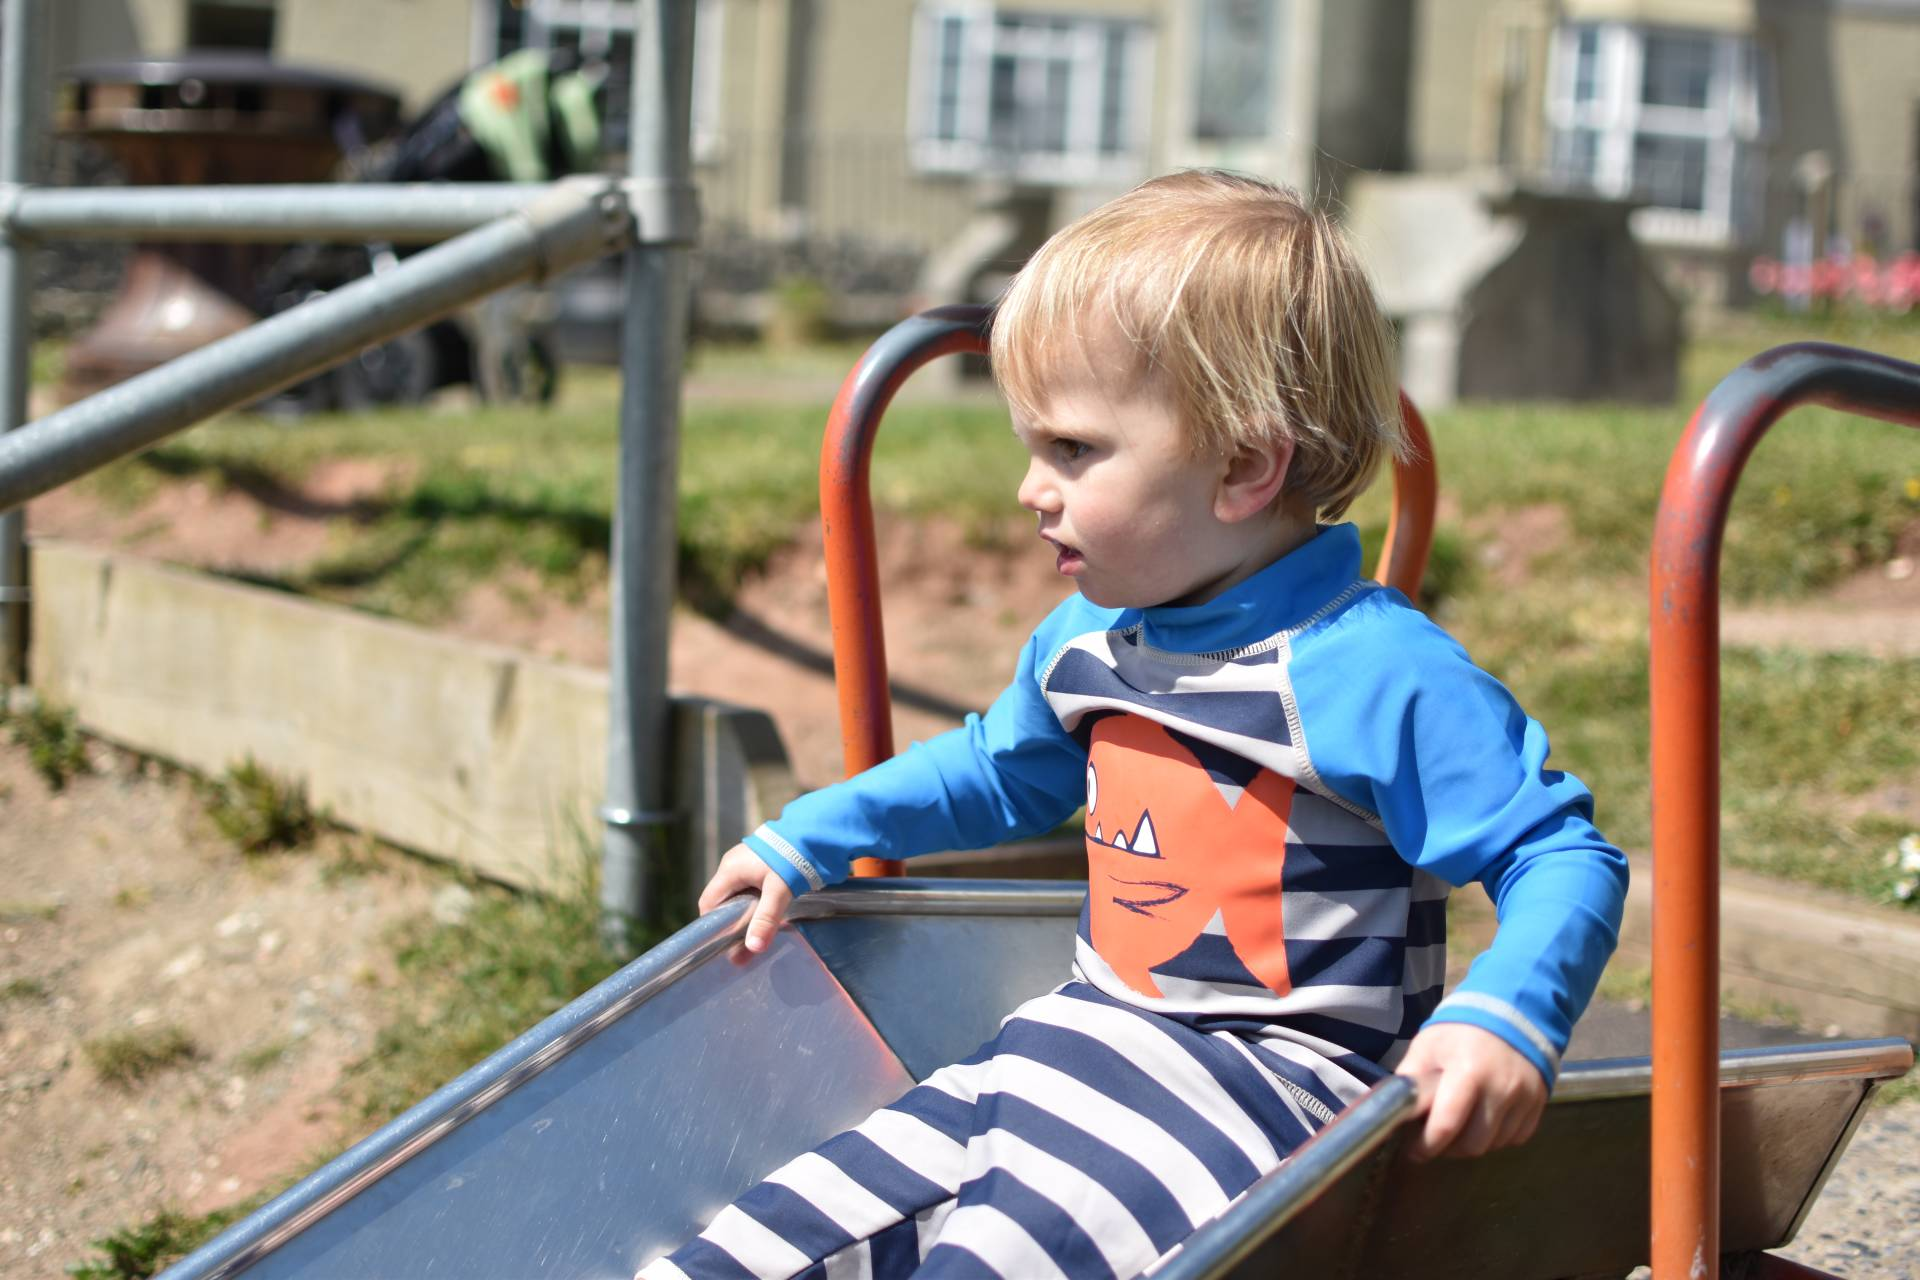 keeping toddlers safe in the sun with this cute little set from Frugi